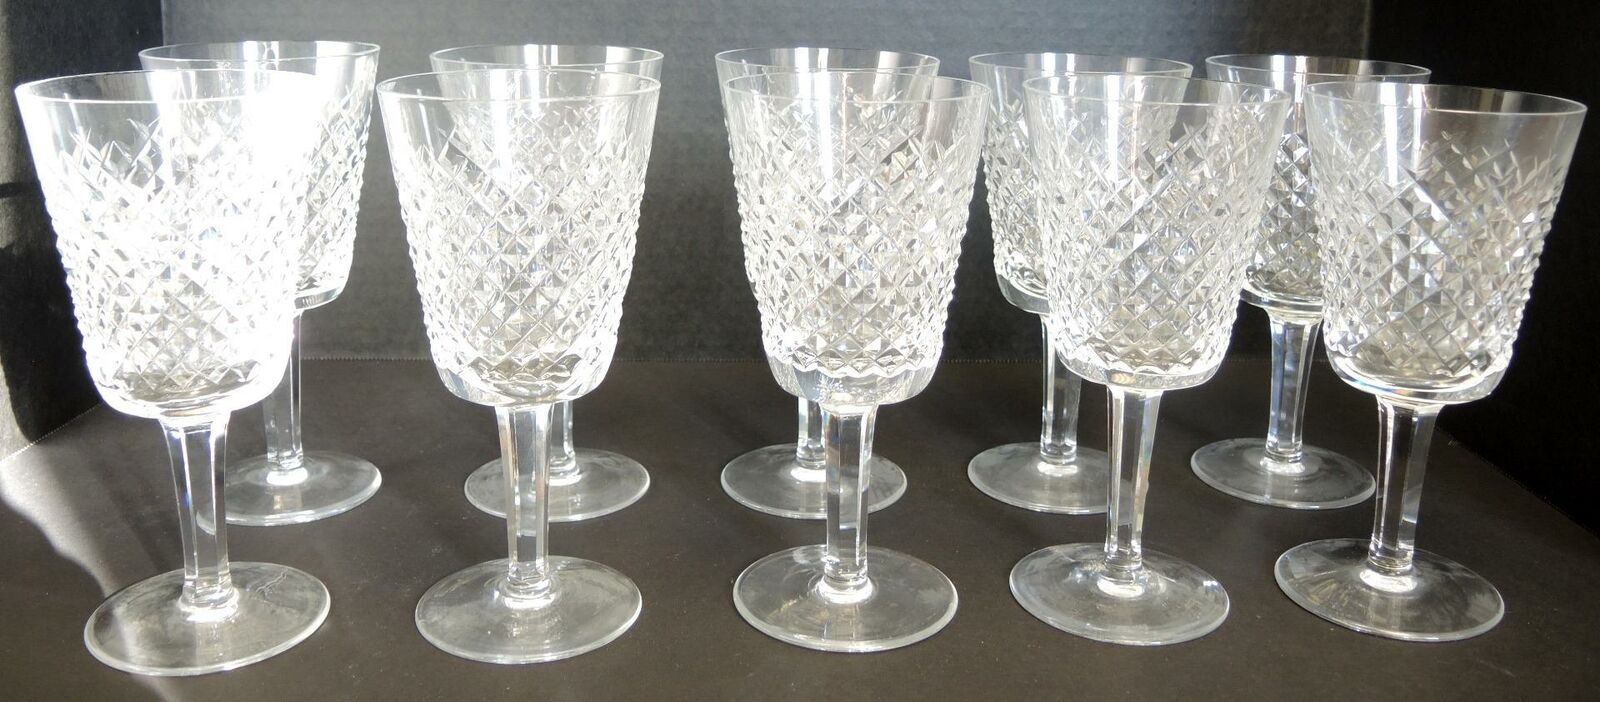 Primary image for Ten Waterford Water Goblets  - Alana Pattern